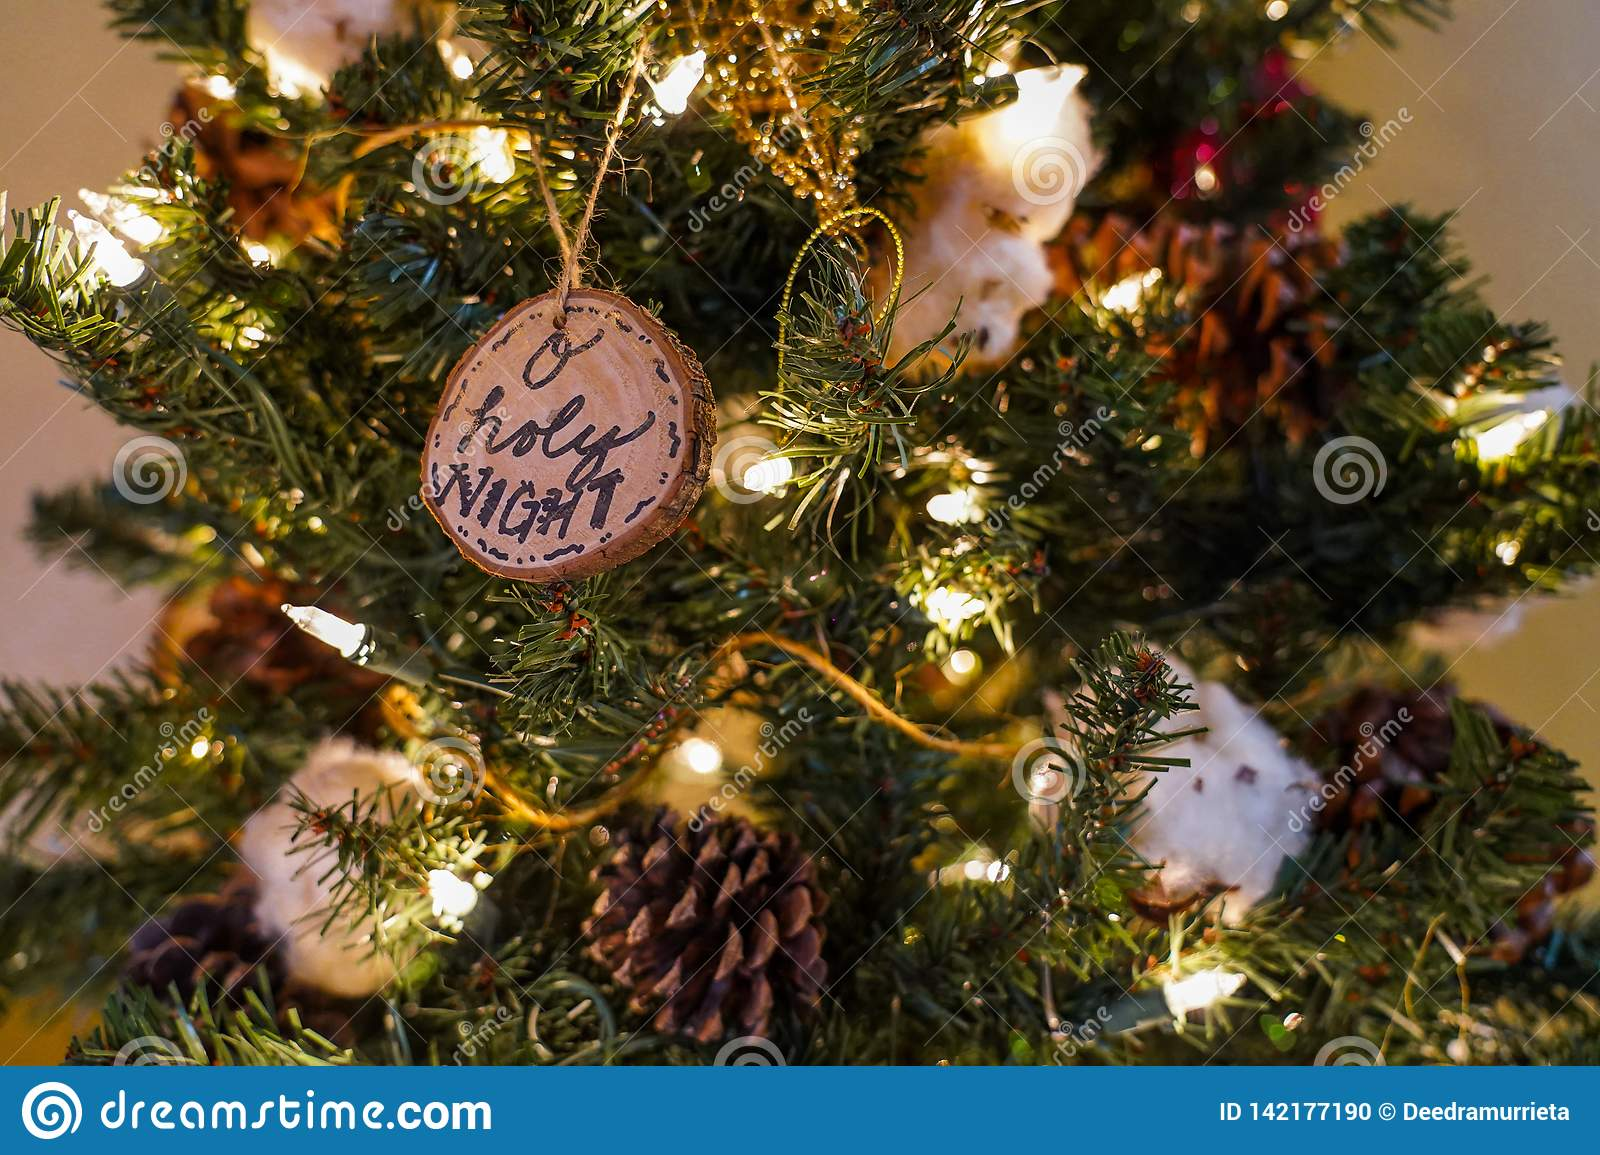 O holy night and other ornaments on a christmas tree